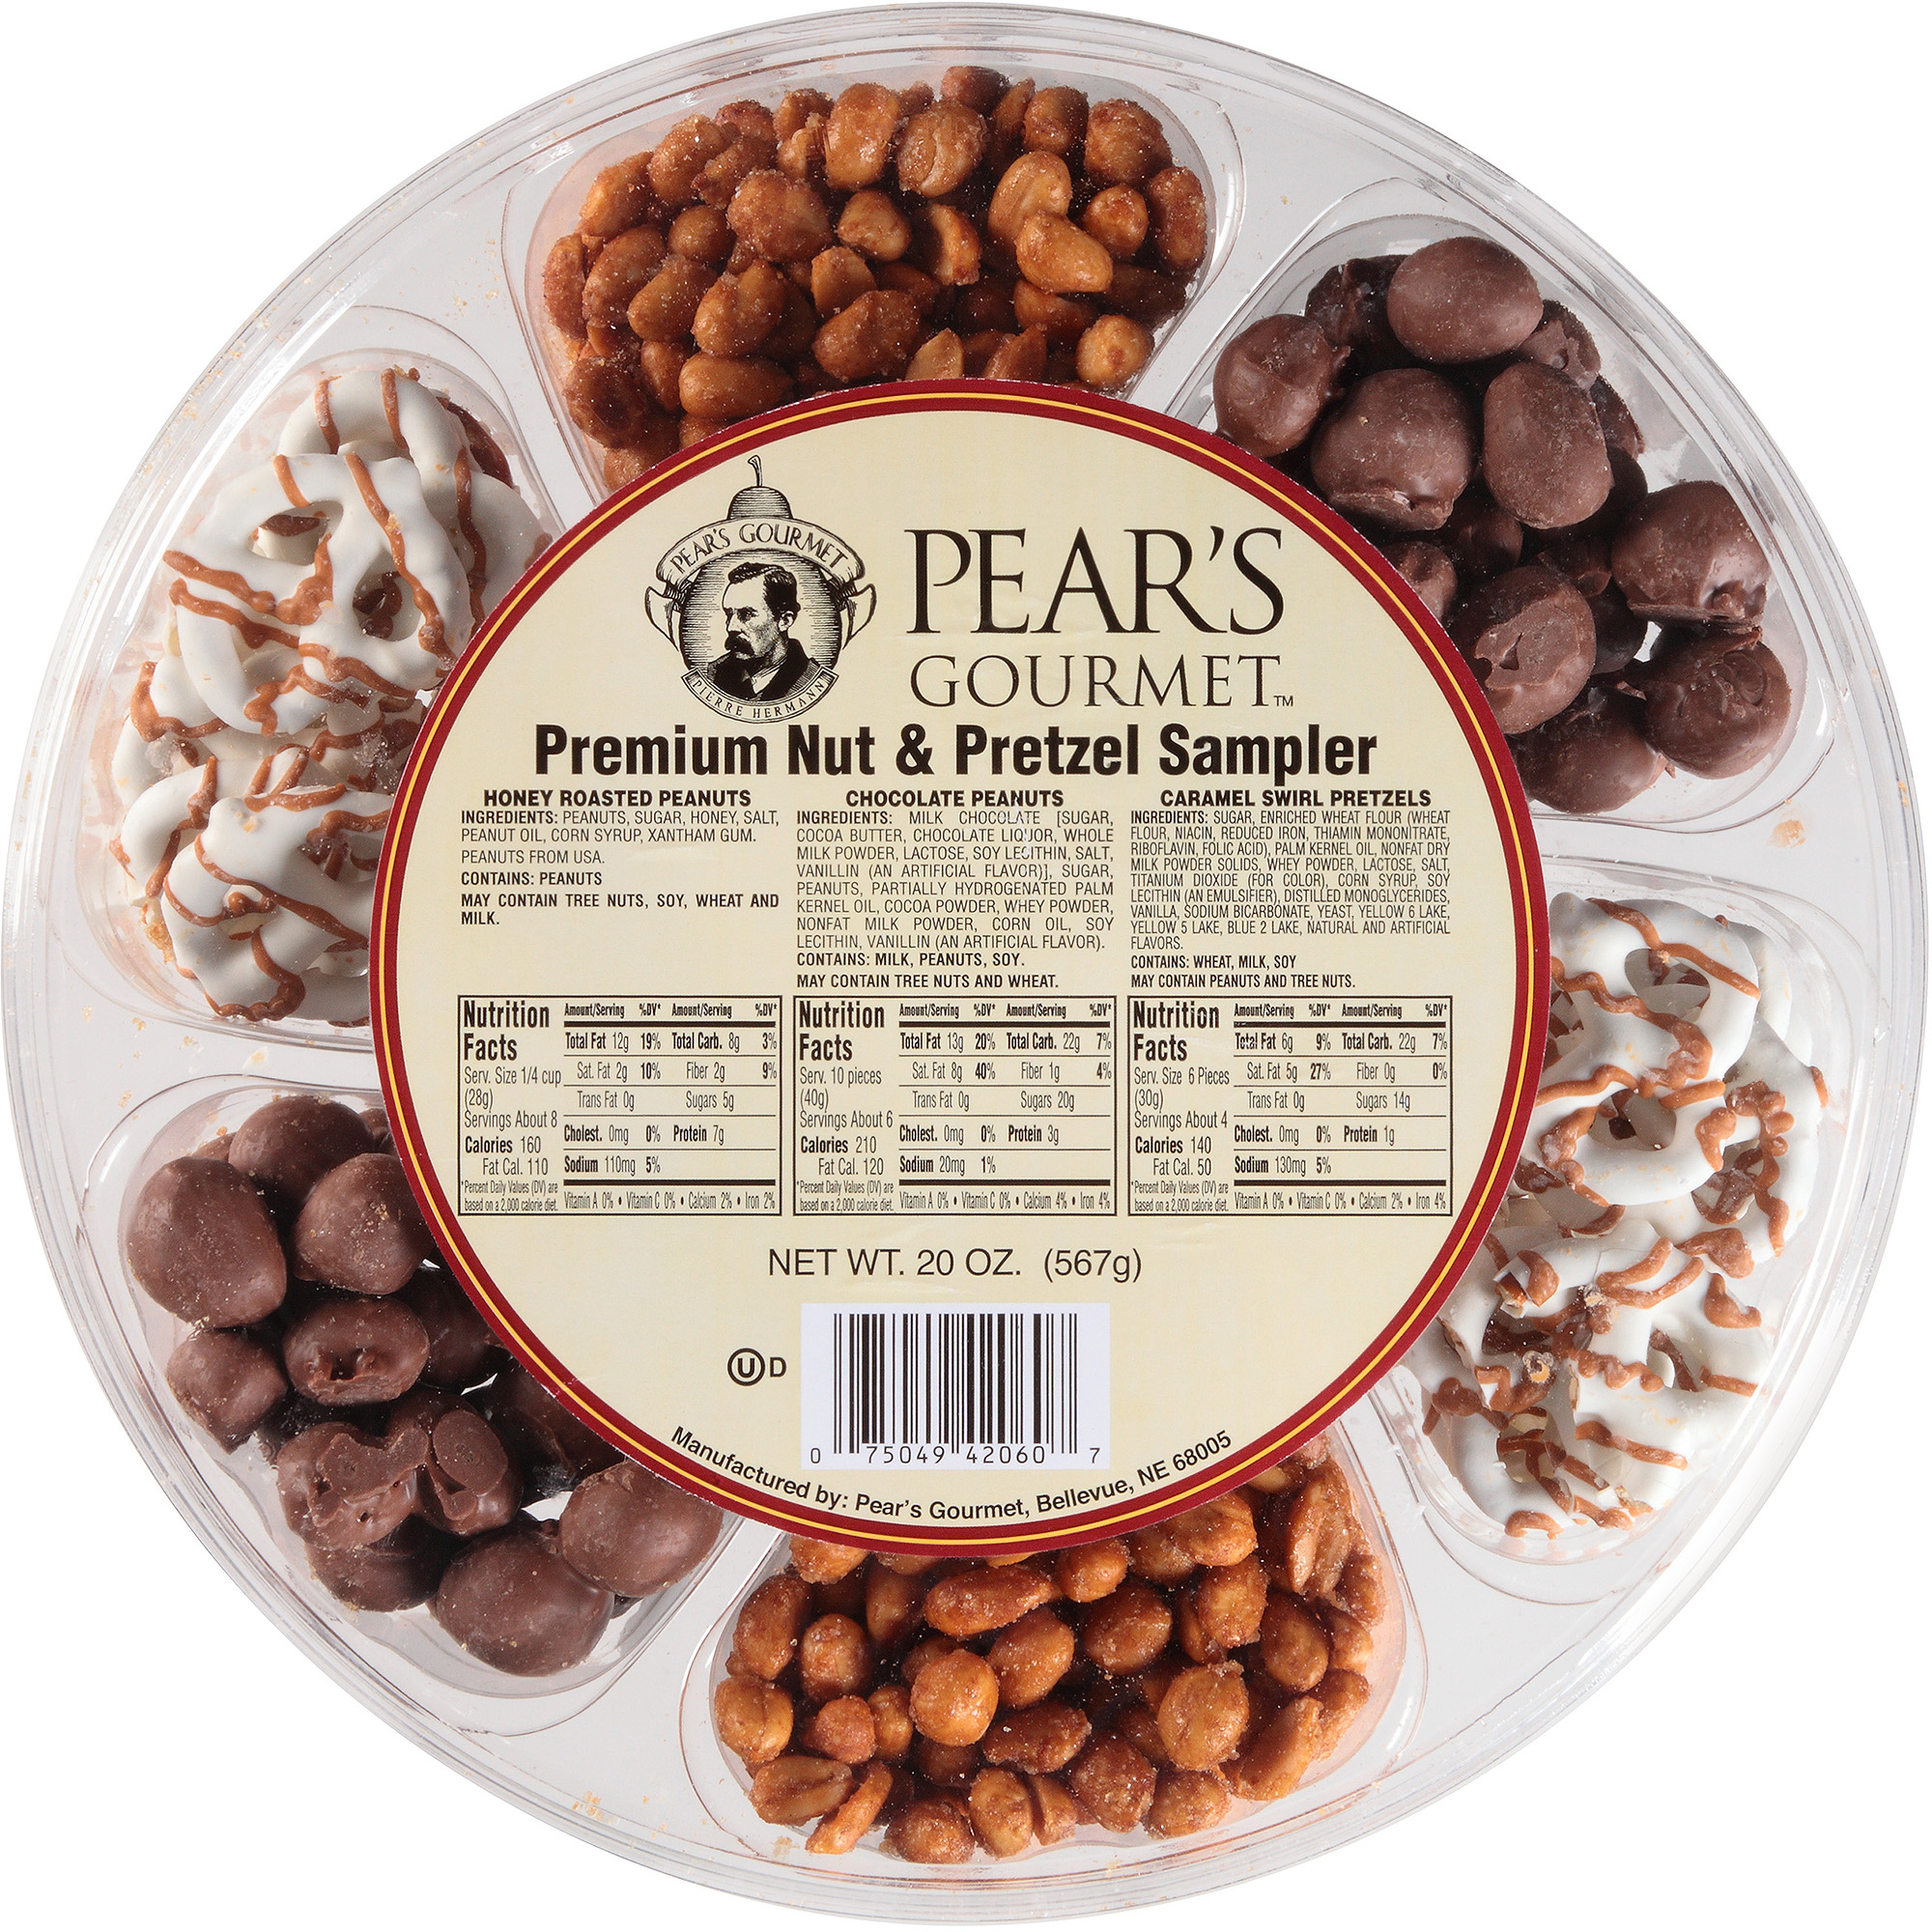 Pear's Gourmet Holiday Premium Nut & Pretzel Sampler Gift, 20.5 oz